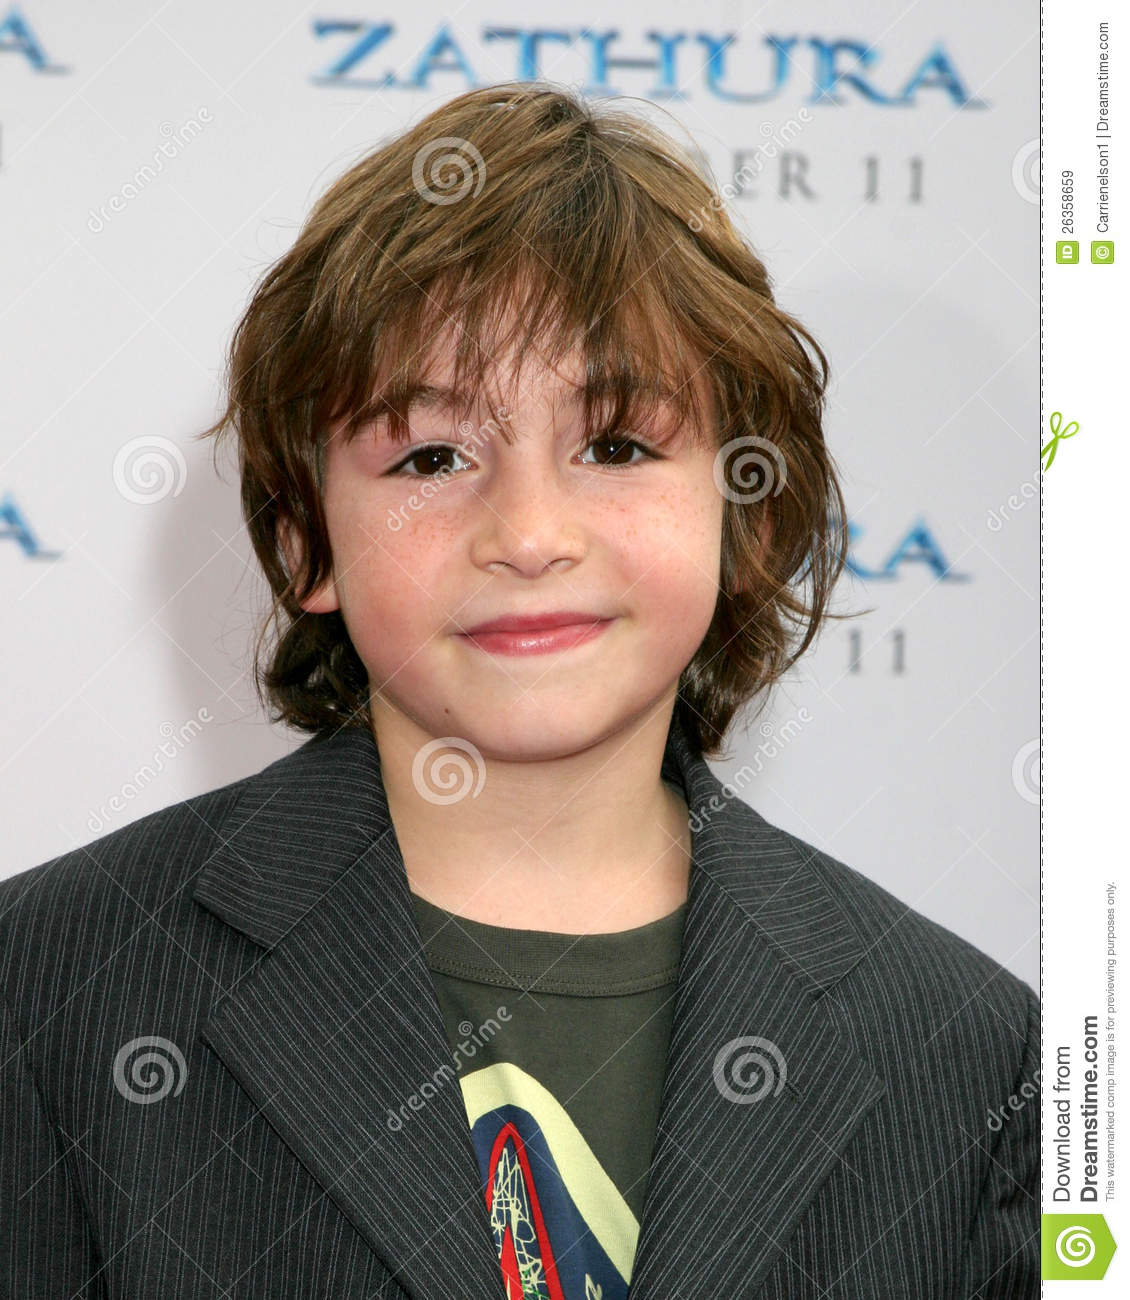 jonah bobo nowjonah bobo 2016, jonah bobo insta, jonah bobo instagram, jonah bobo, jonah bobo 2015, jonah bobo twitter, jonah bobo imdb, jonah bobo backyardigans, jonah bobo movies, jonah bobo net worth, jonah bobo age, jonah bobo now, jonah bobo disconnect, jonah bobo interview, jonah bobo and josh hutcherson, jonah bobo crazy stupid love, jonah bobo real name, jonah bobo facebook, jonah bobo 2013, jonah bobo girlfriend